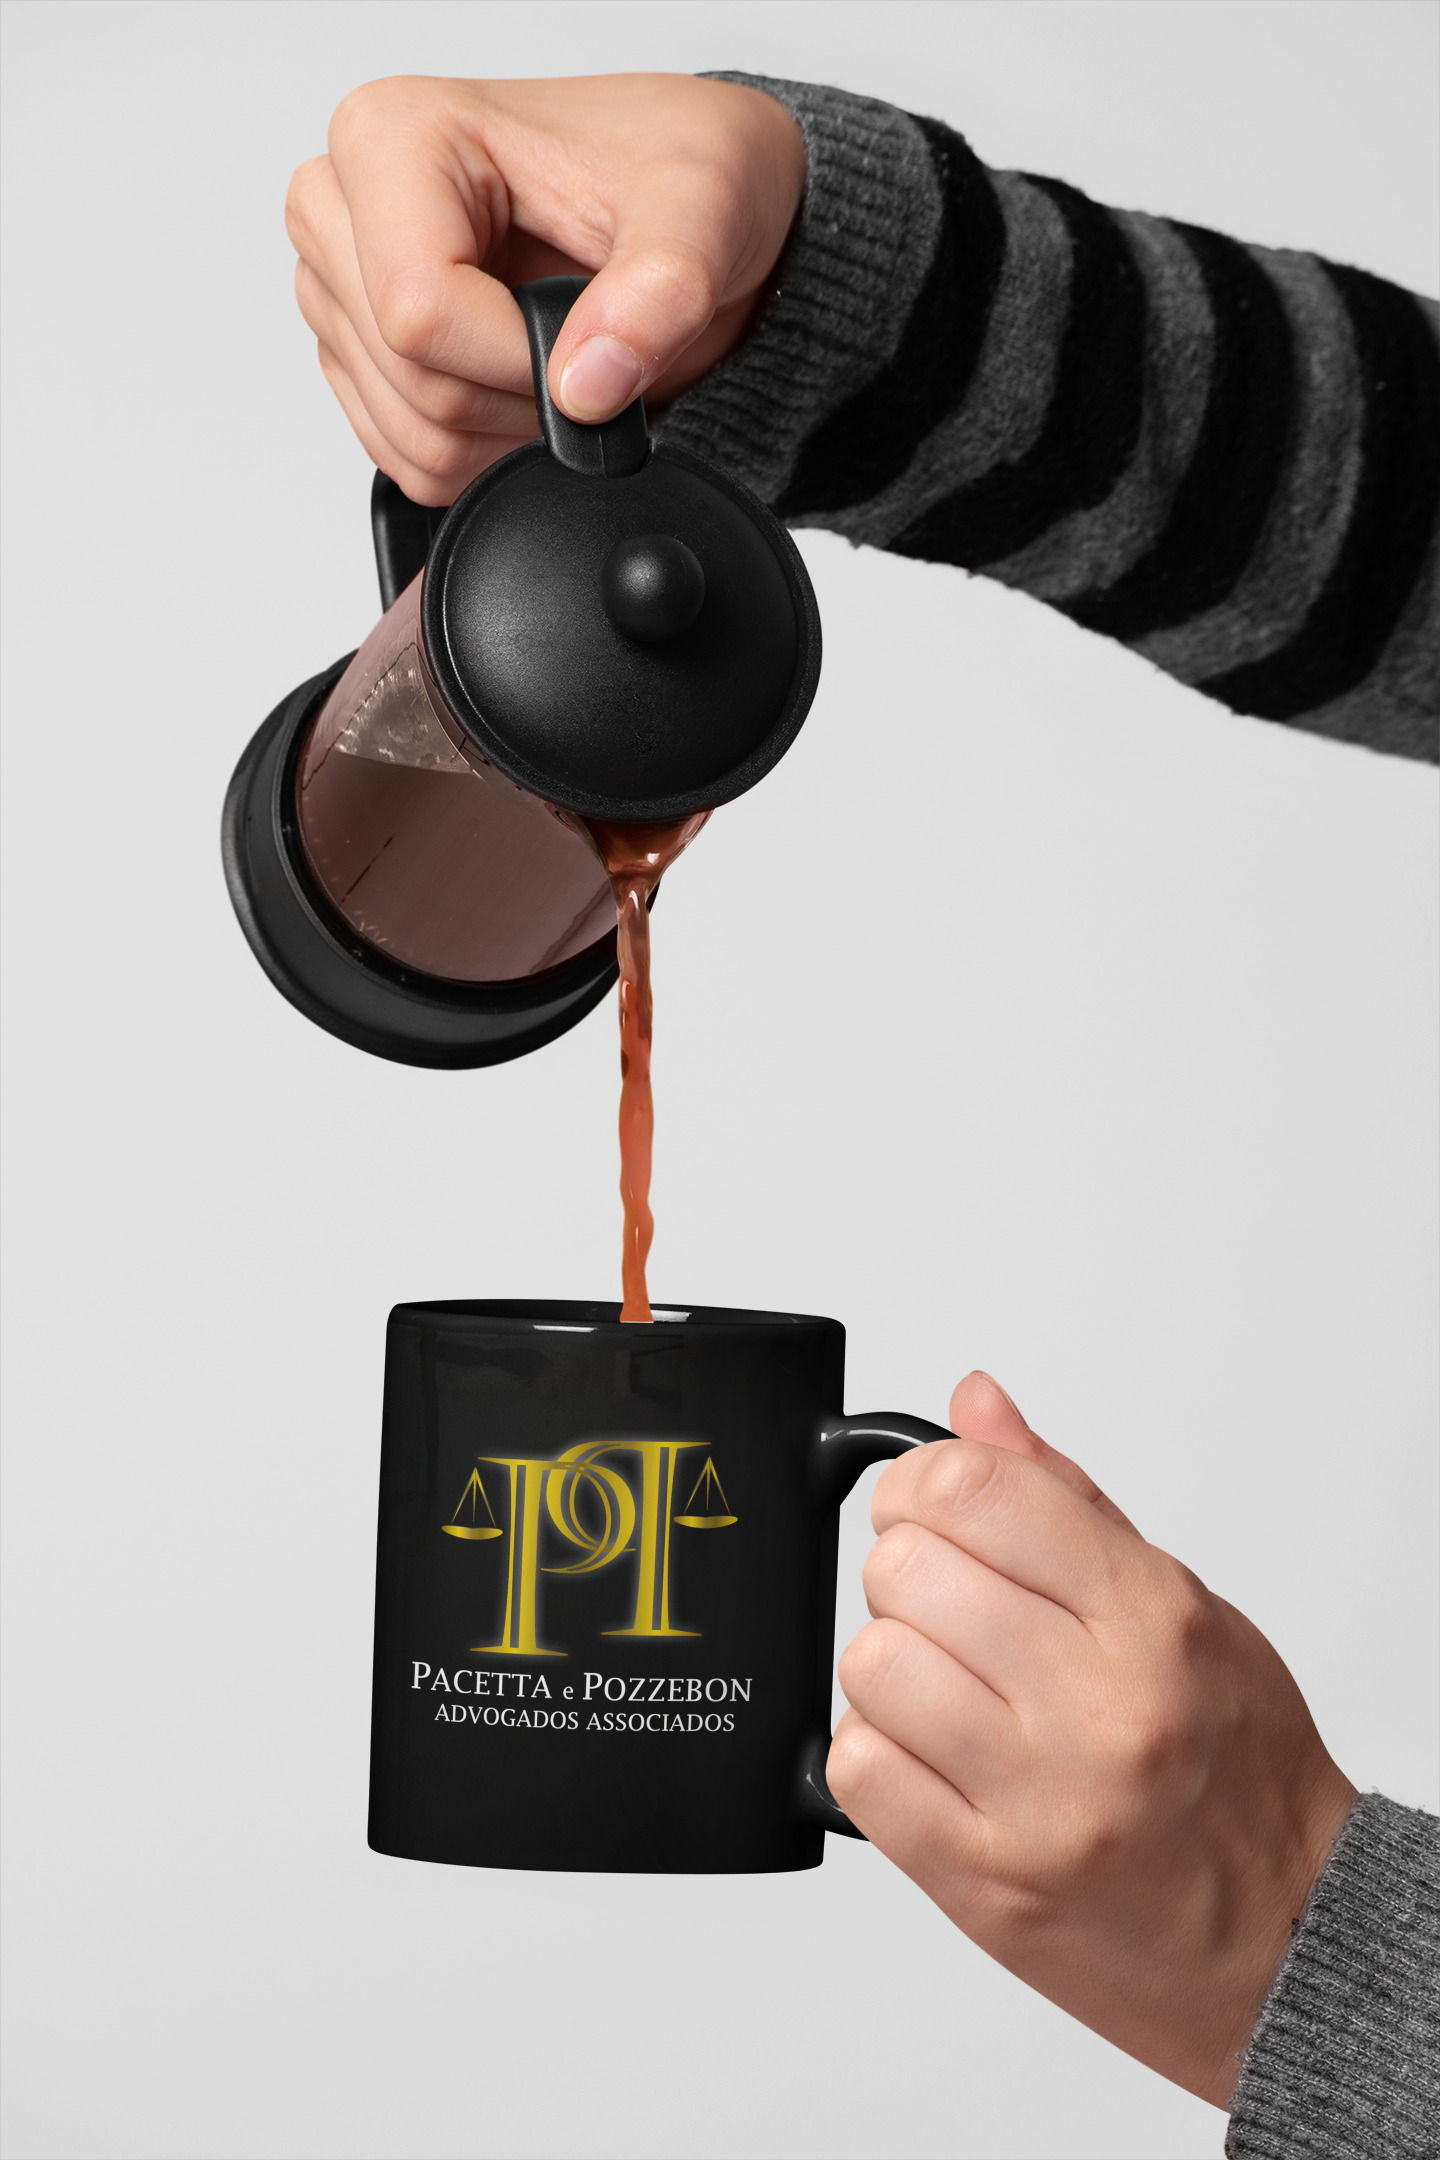 11-oz-mug-mockup-of-a-hand-pouring-coffee-from-a-french-press-27314.png